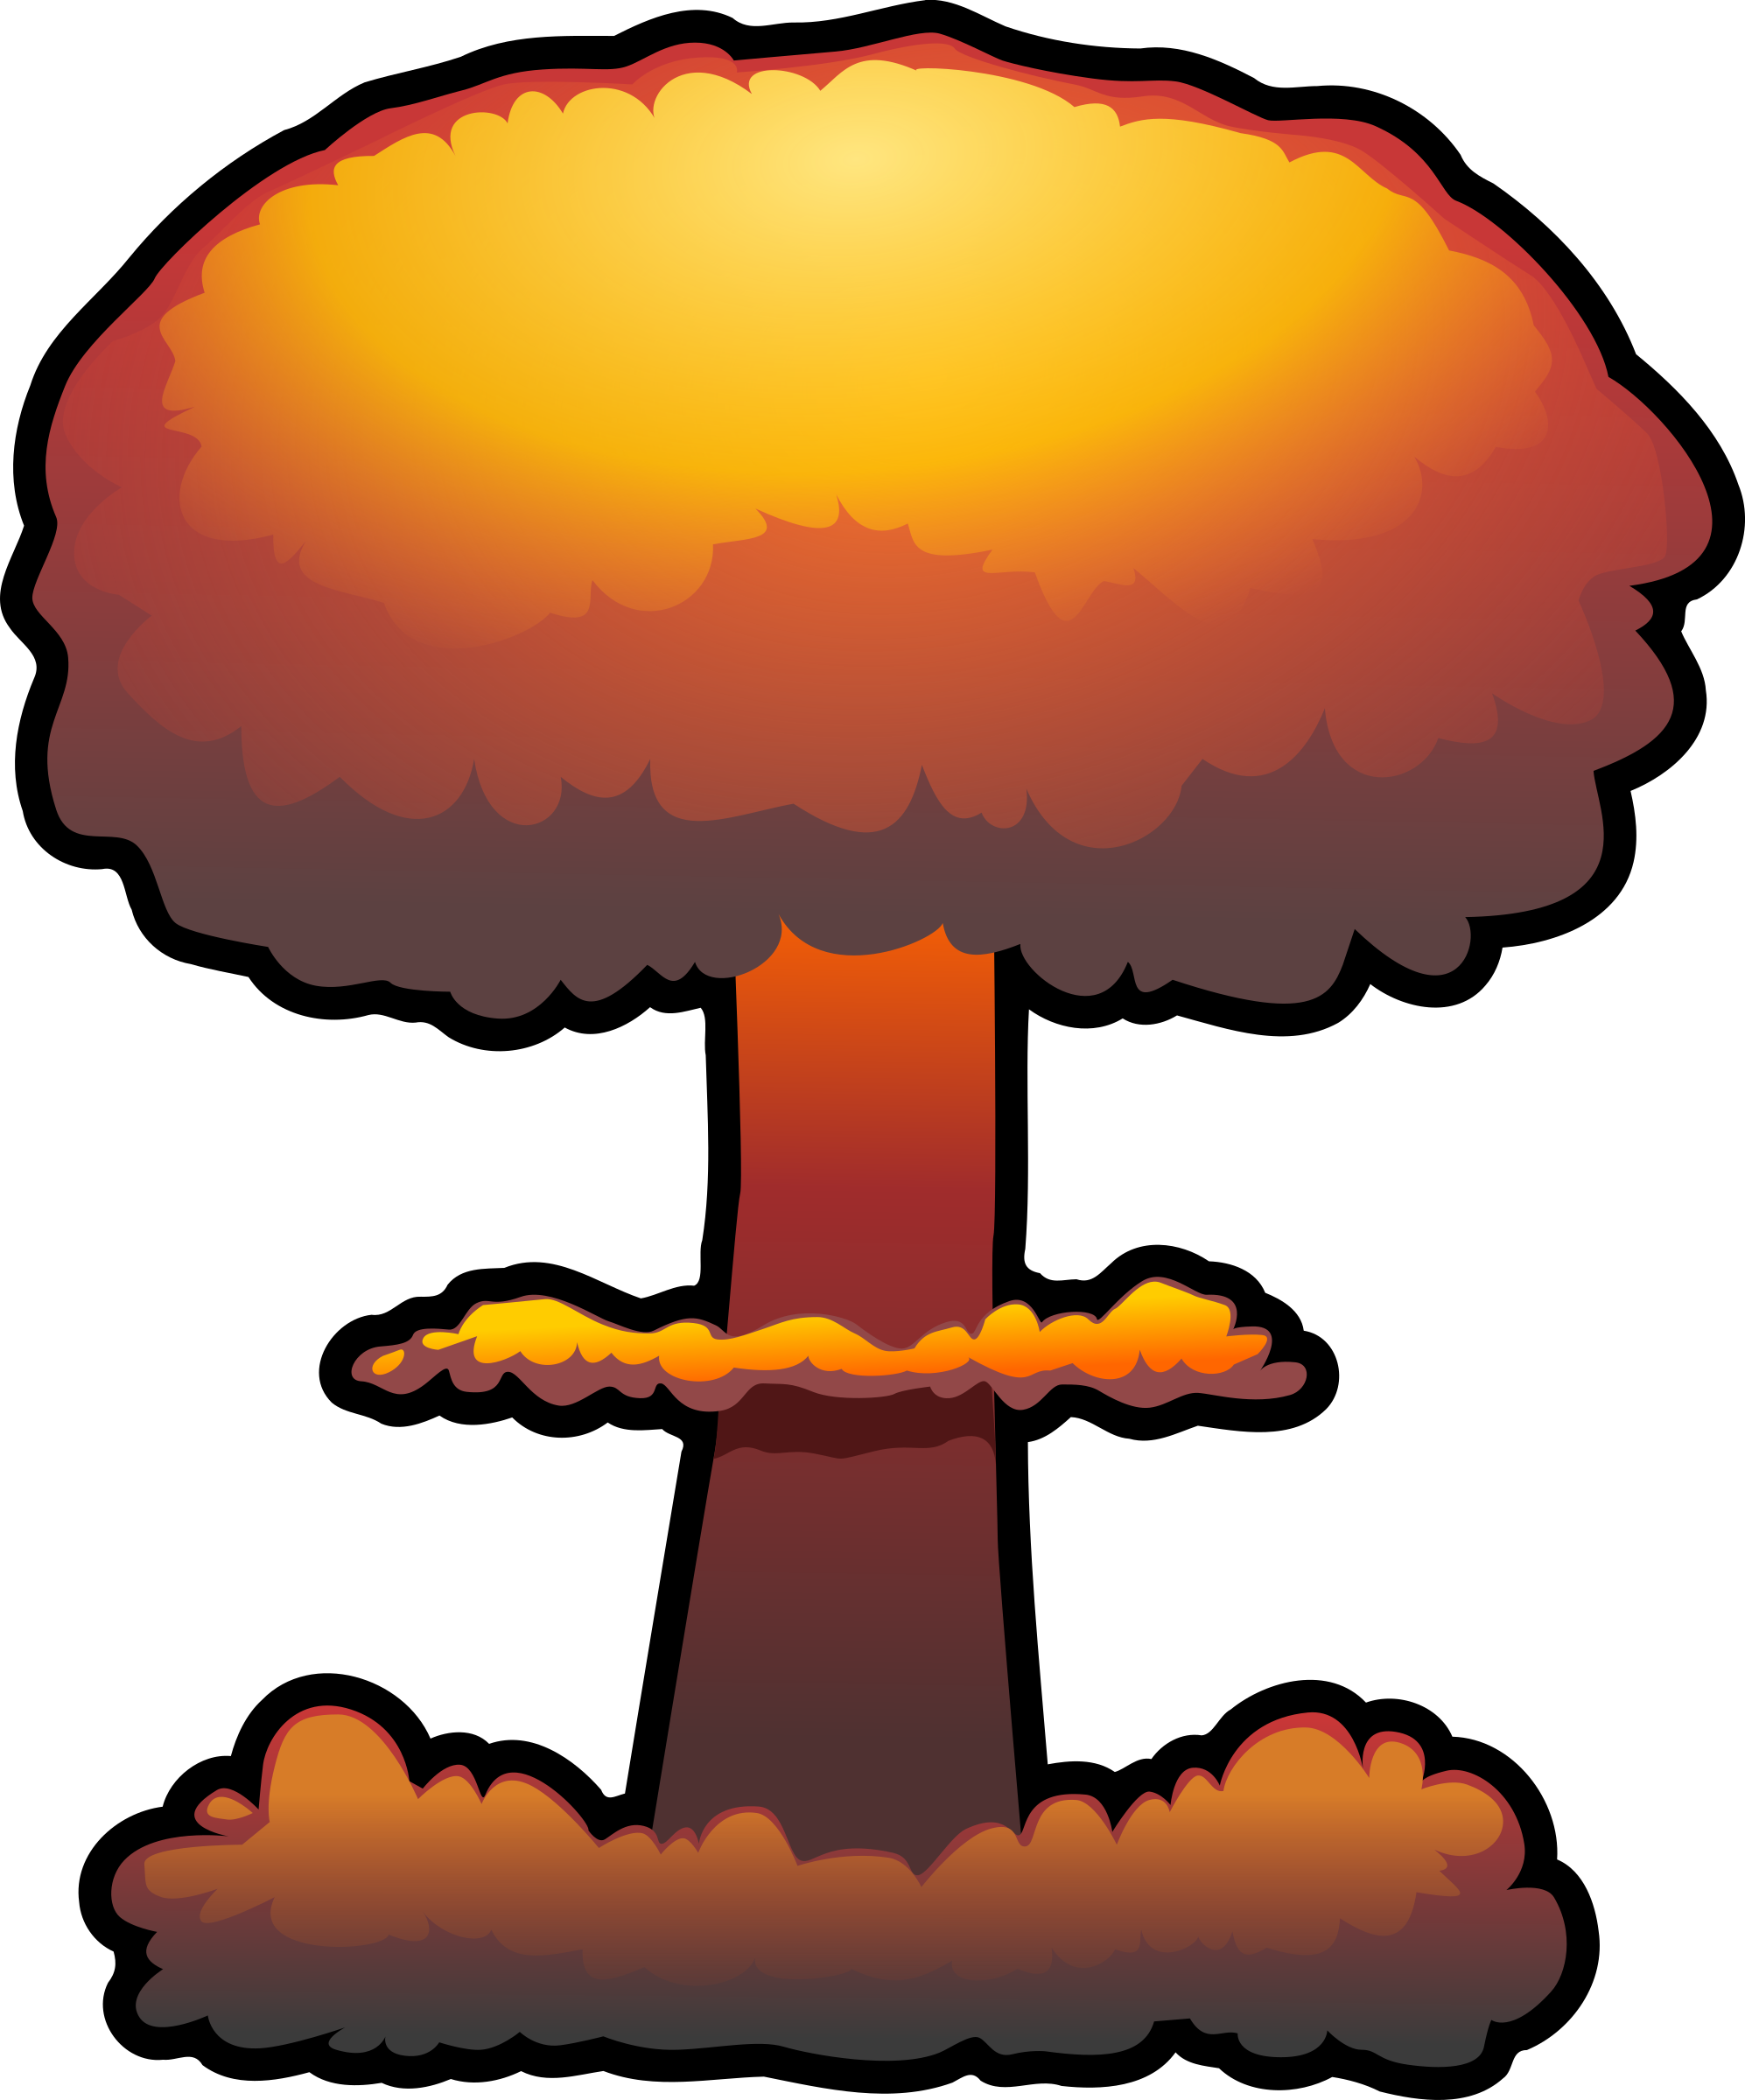 uploads nuclear explosion nuclear explosion PNG40 4